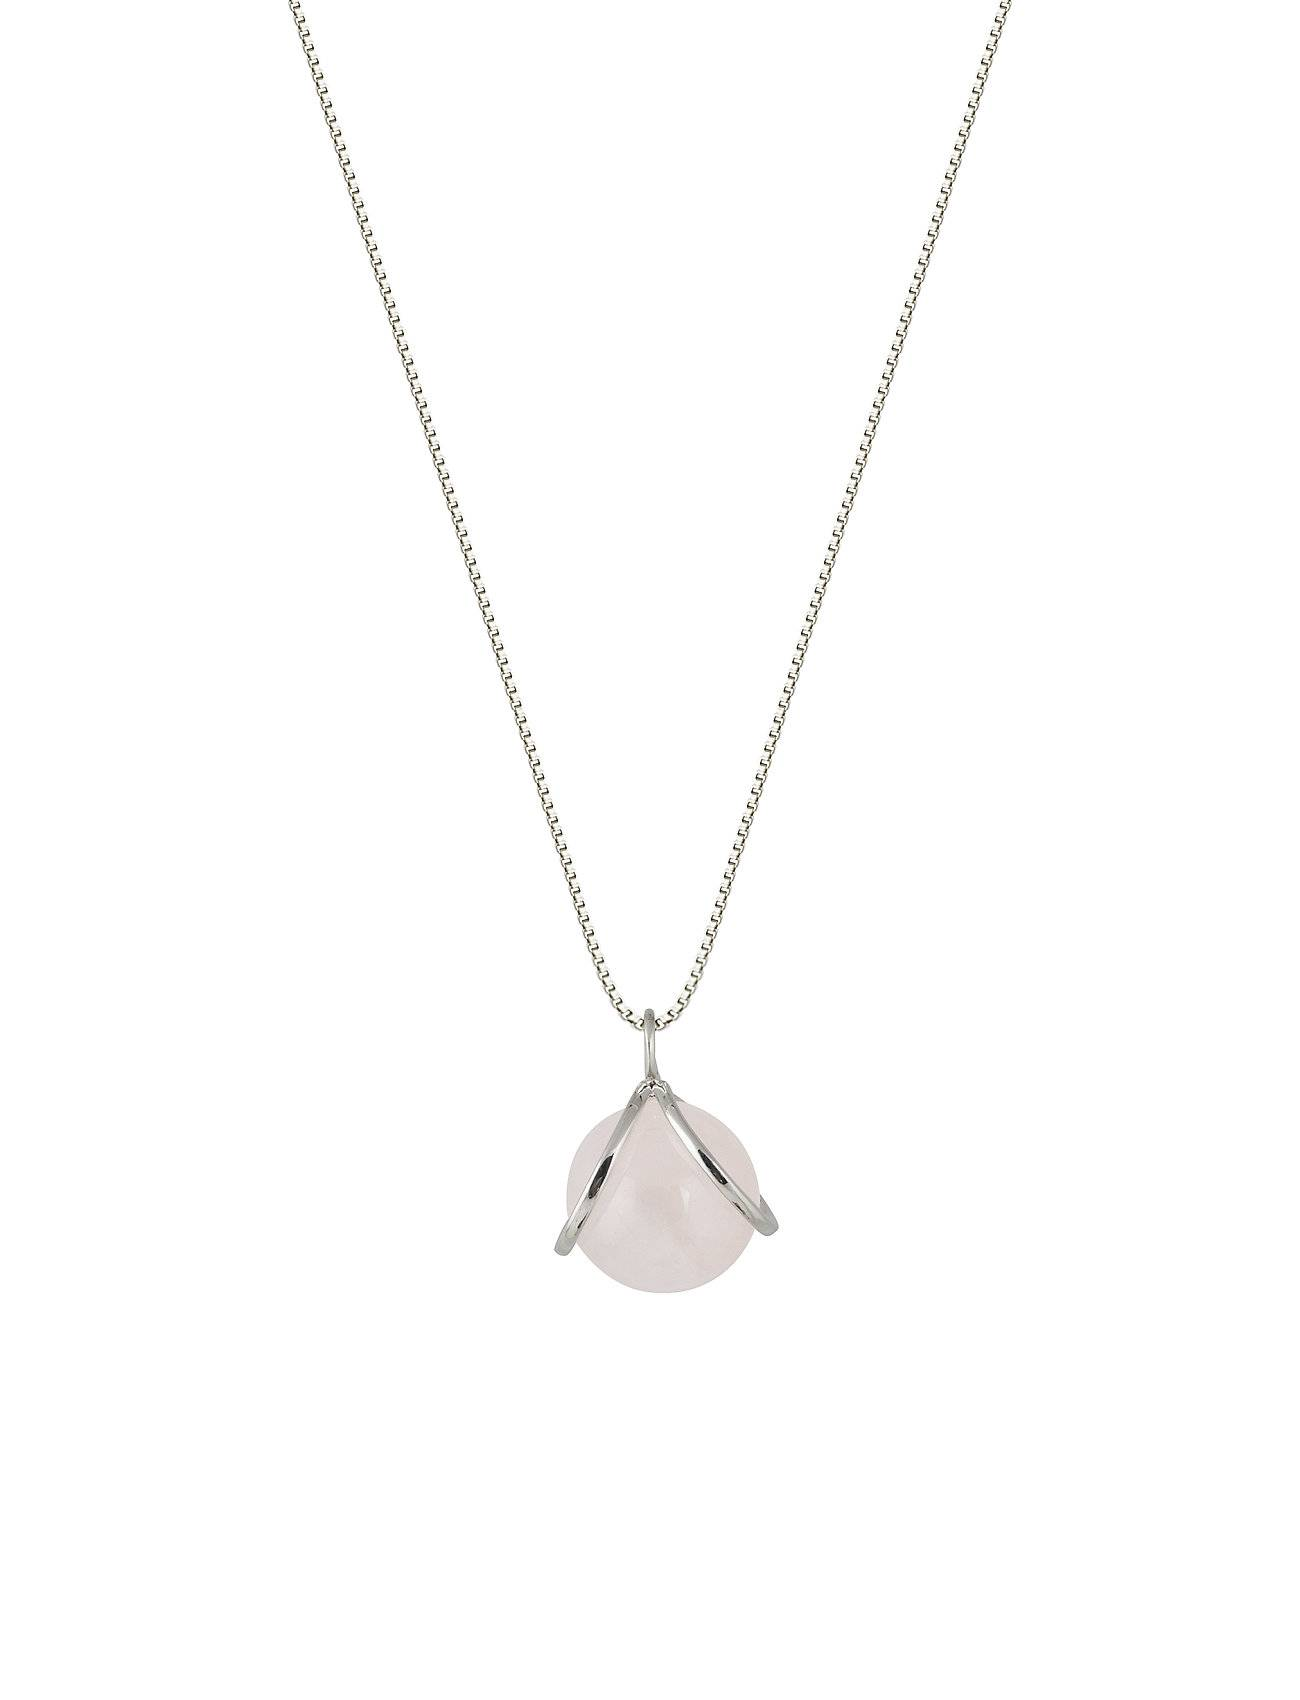 Syster P Planet Necklace Silver Rose Accessories Jewellery Necklaces Dainty Necklaces Hopea Syster P